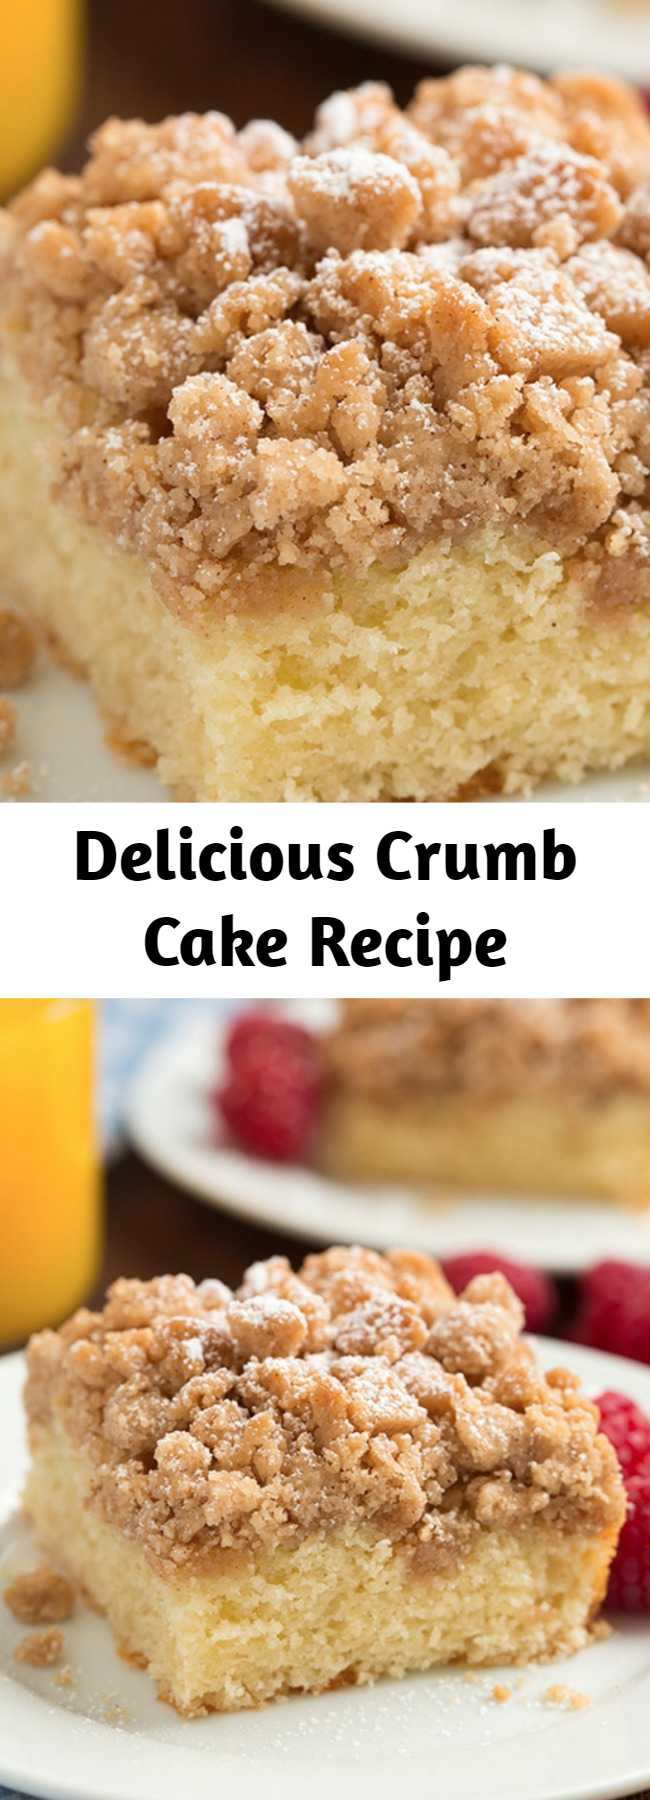 Delicious Crumb Cake Recipe - A deliciously soft and tender cake topped with a crisp buttery crumble. Perfect for a weekend breakfast or holiday brunch.